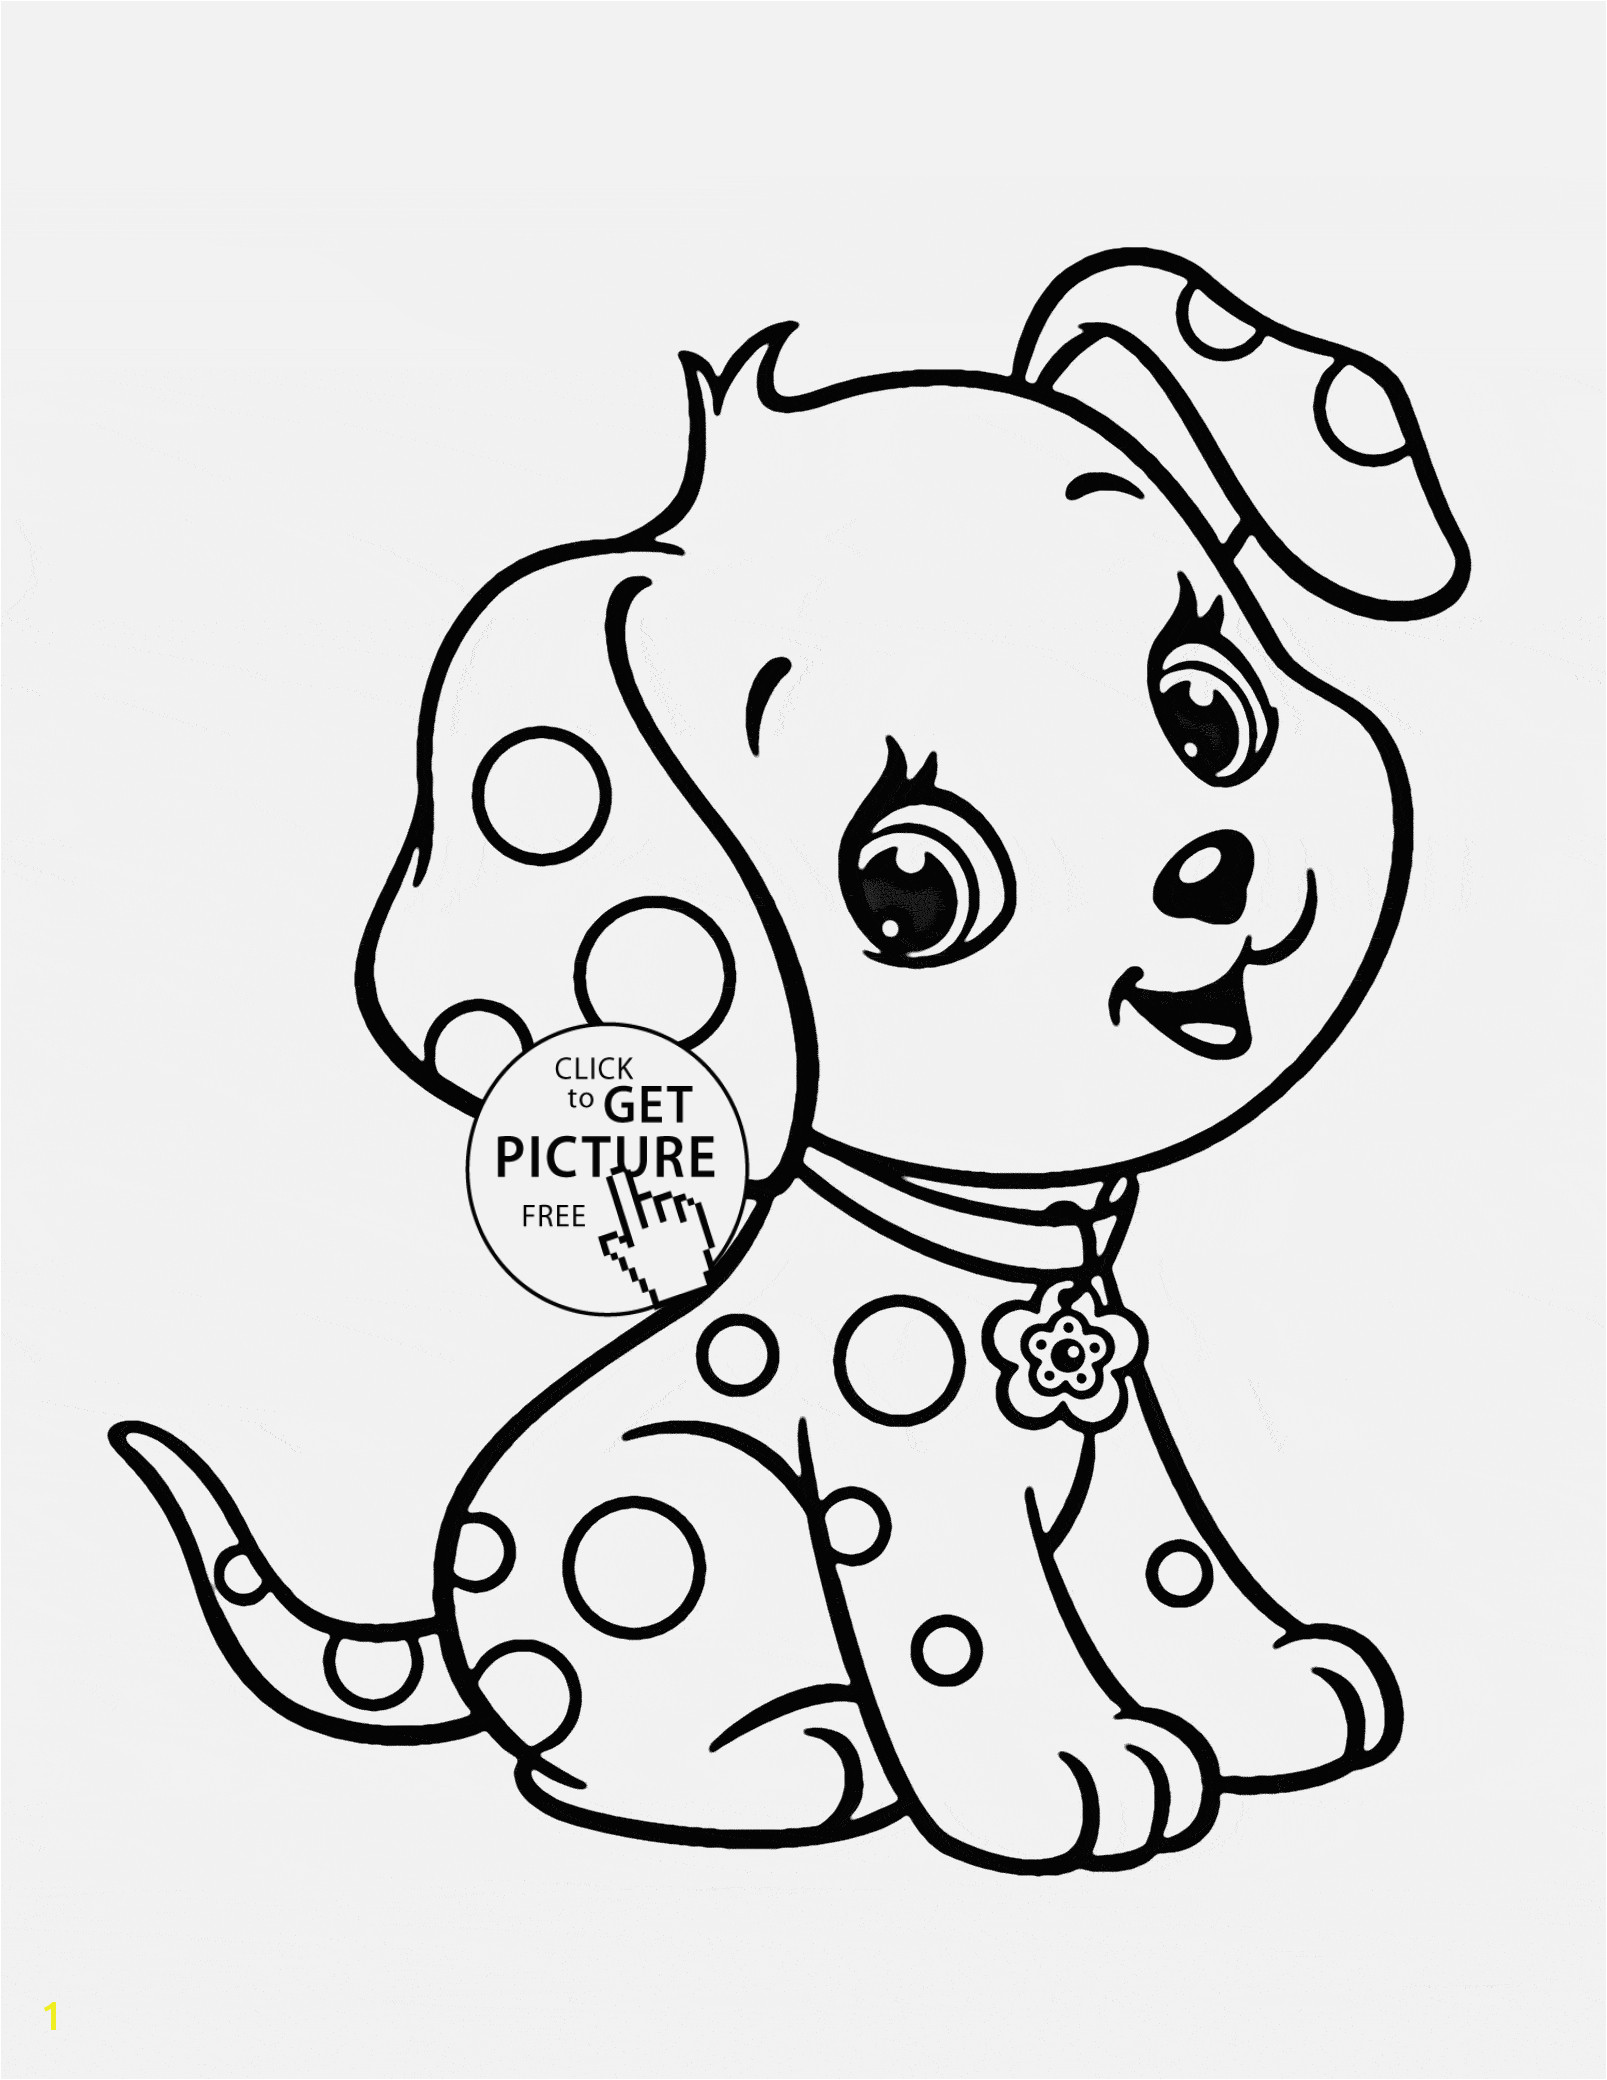 Free Animal Coloring Pages Free Print Cool Coloring Page Unique Witch Coloring Pages New Crayola Pages 0d